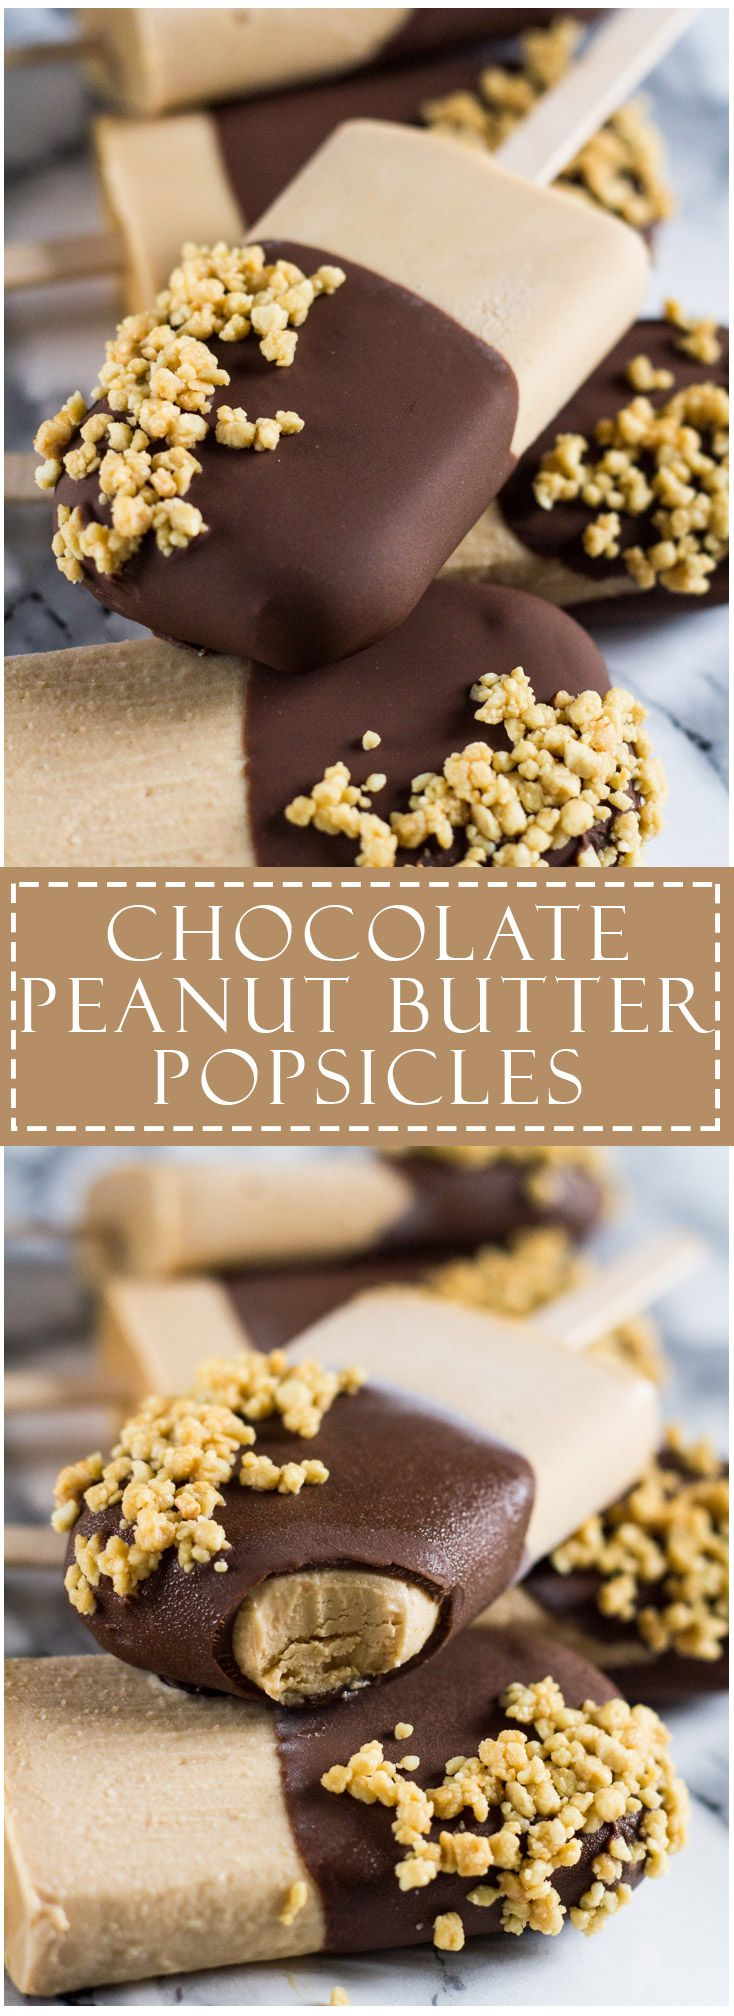 Chocolate Peanut Butter Yoghurt Popsicles | marshasbakingaddiction.com…